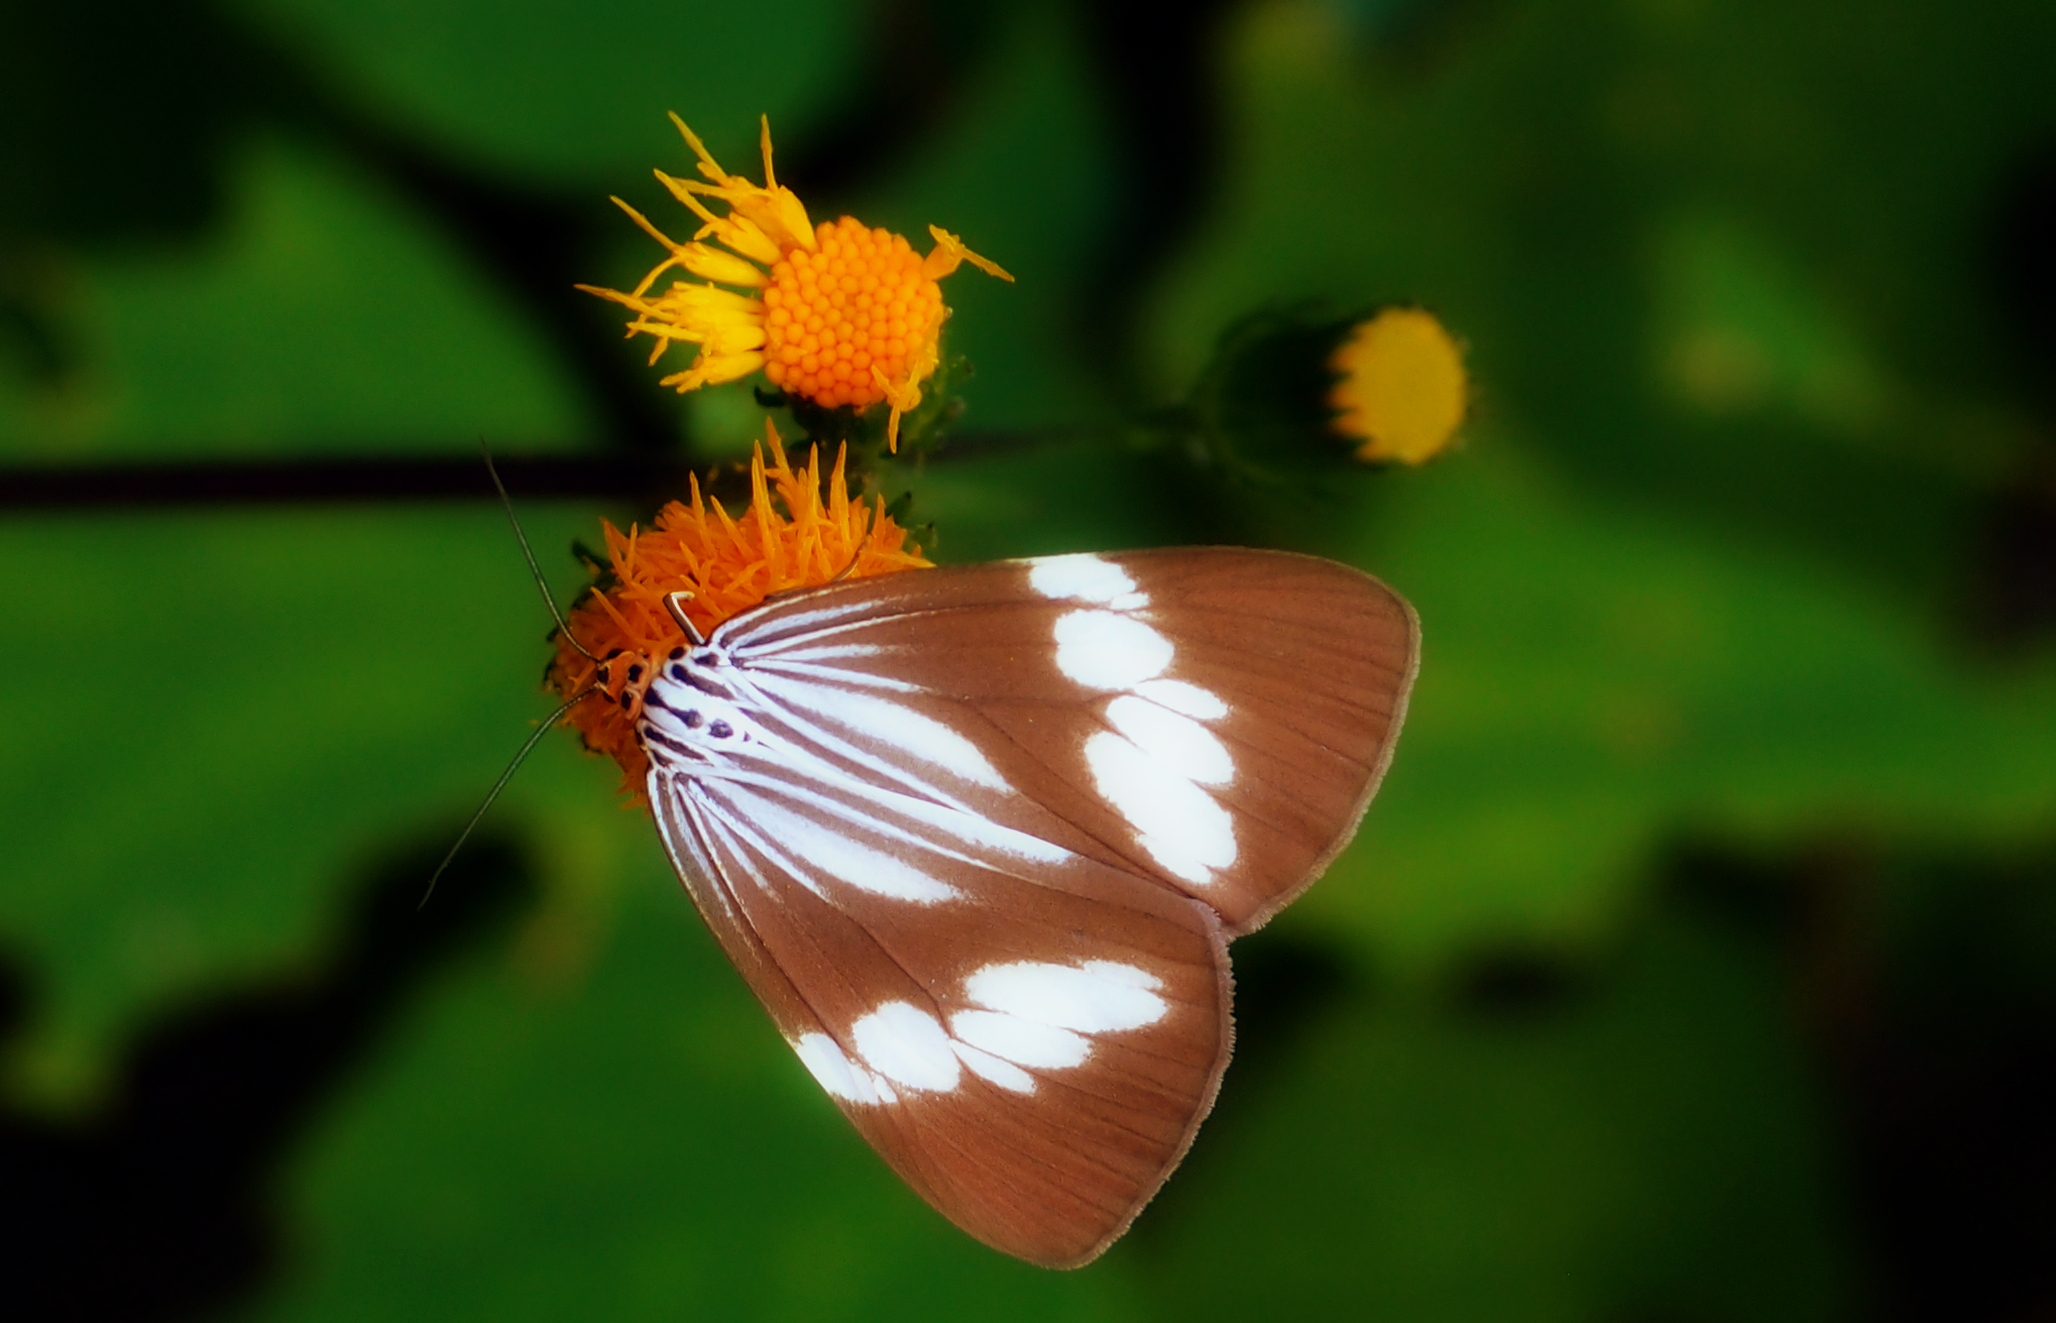 Same butterfly different angle